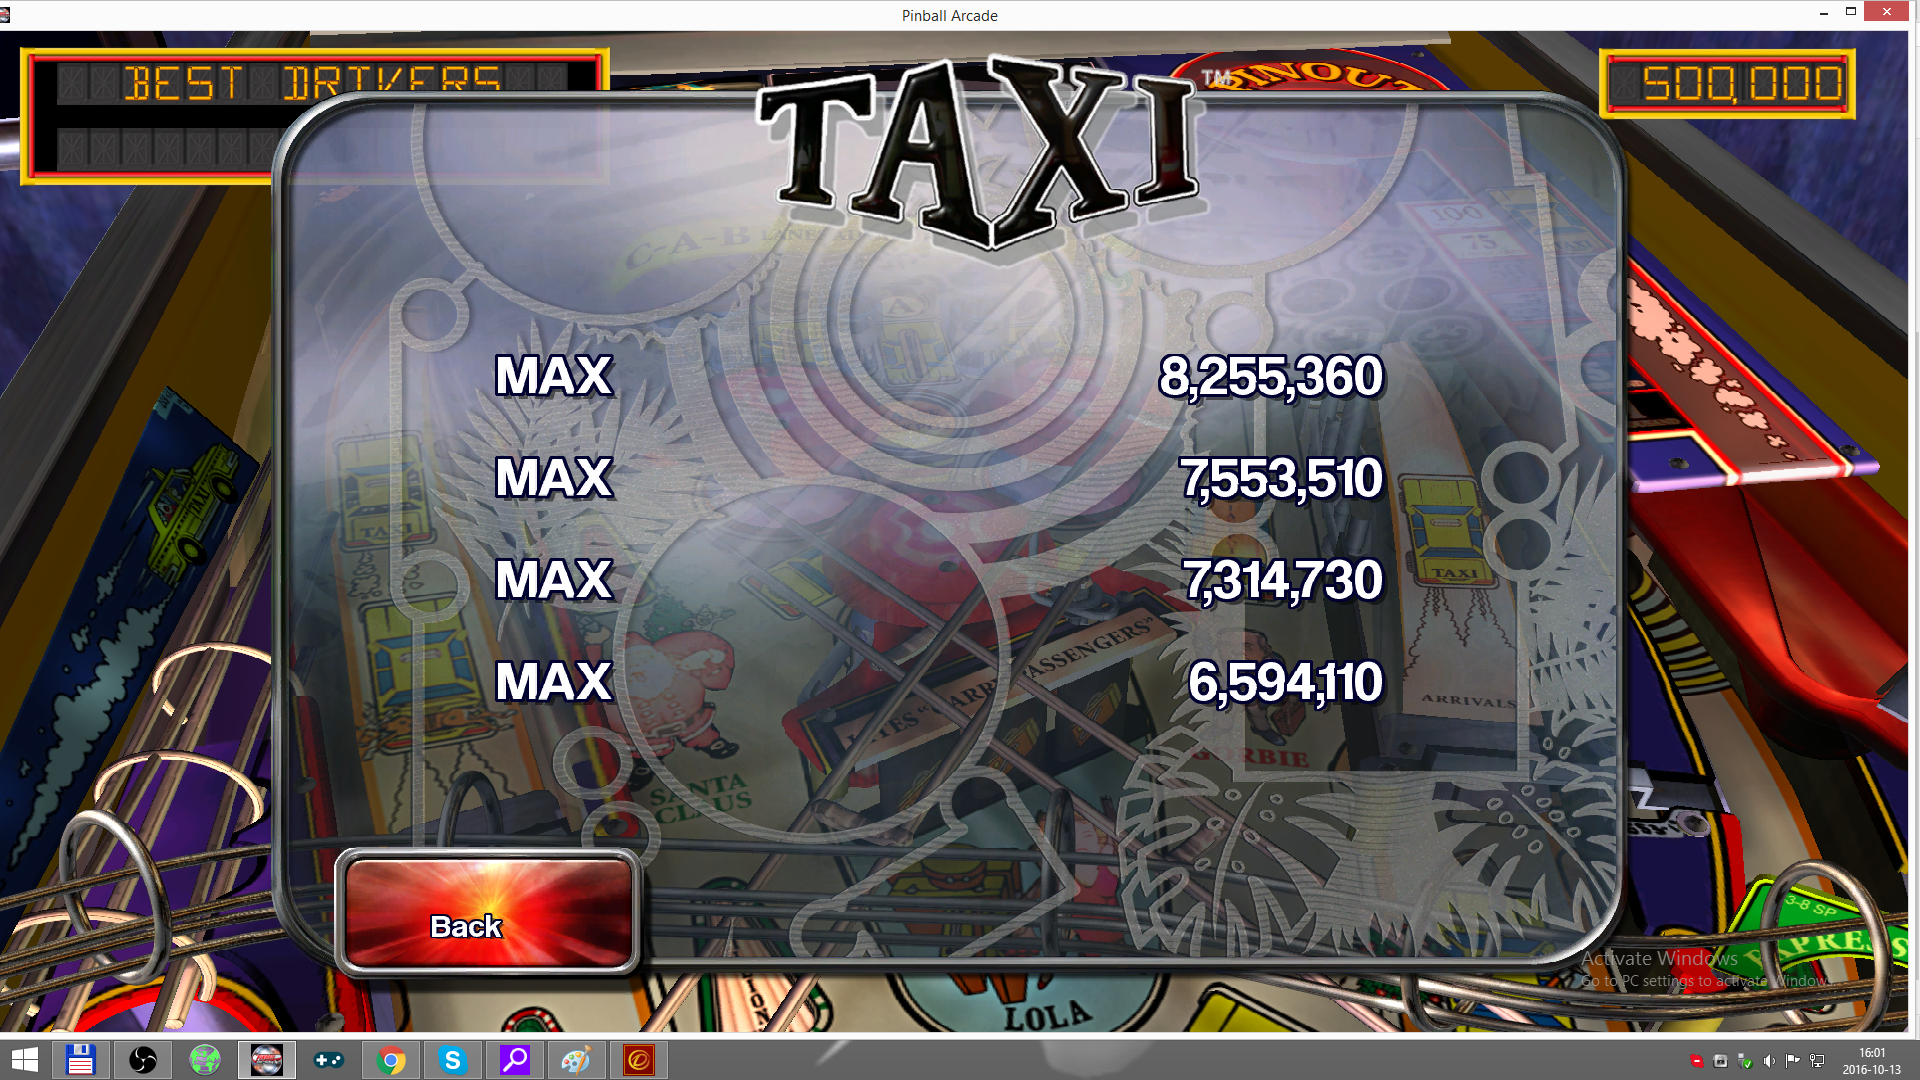 maxgreat: Pinball Arcade: Taxi (PC) 8,255,360 points on 2016-10-13 09:37:49